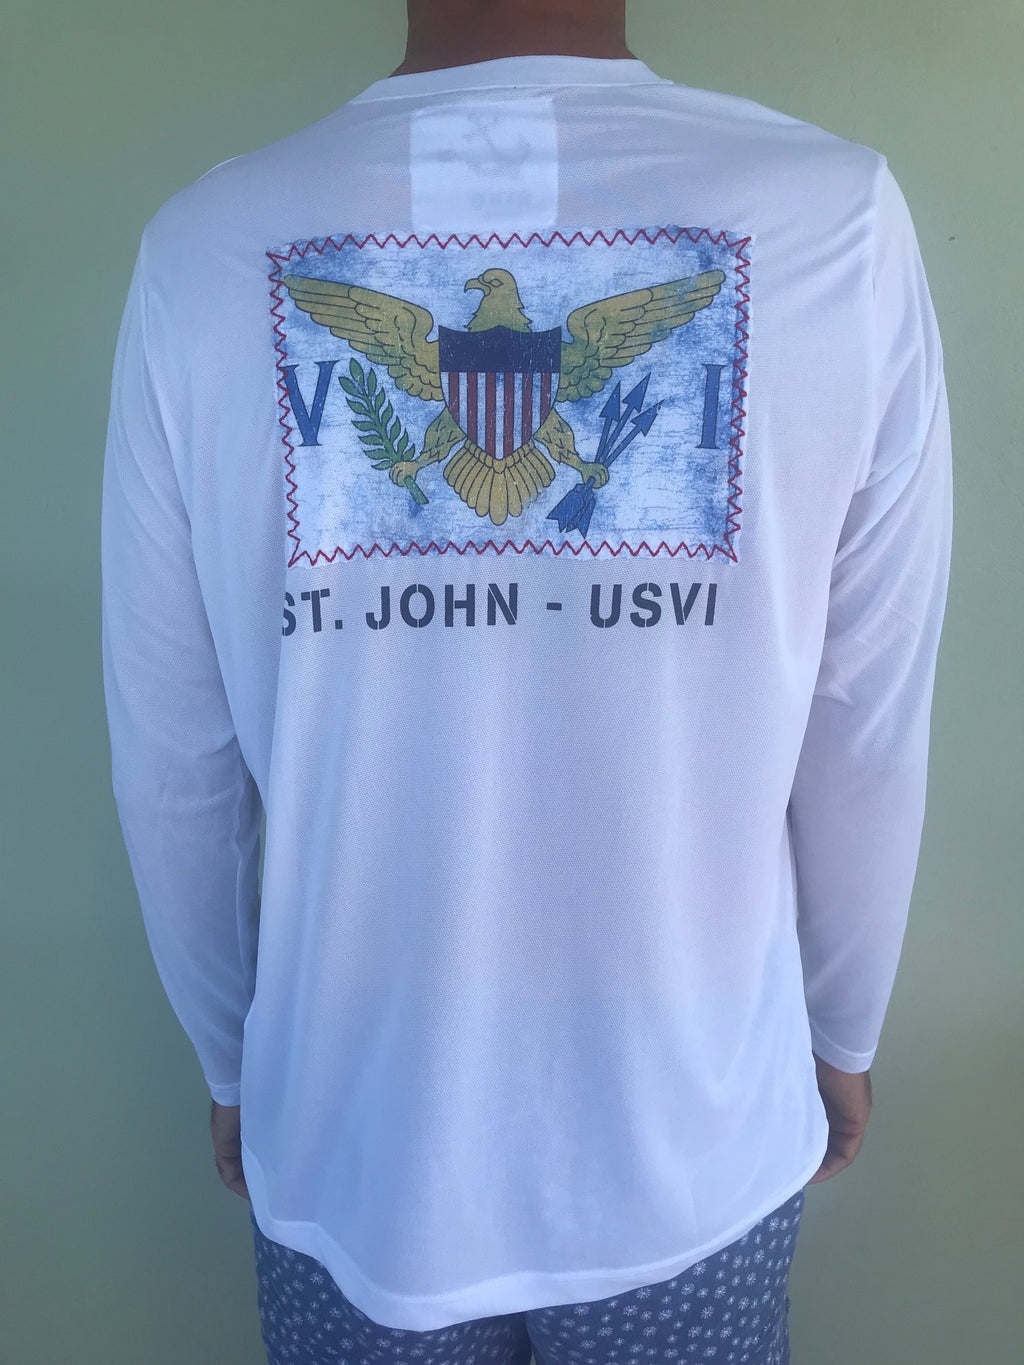 Long Sleeve Virgin Islands Flag St John Patch Suntek - White